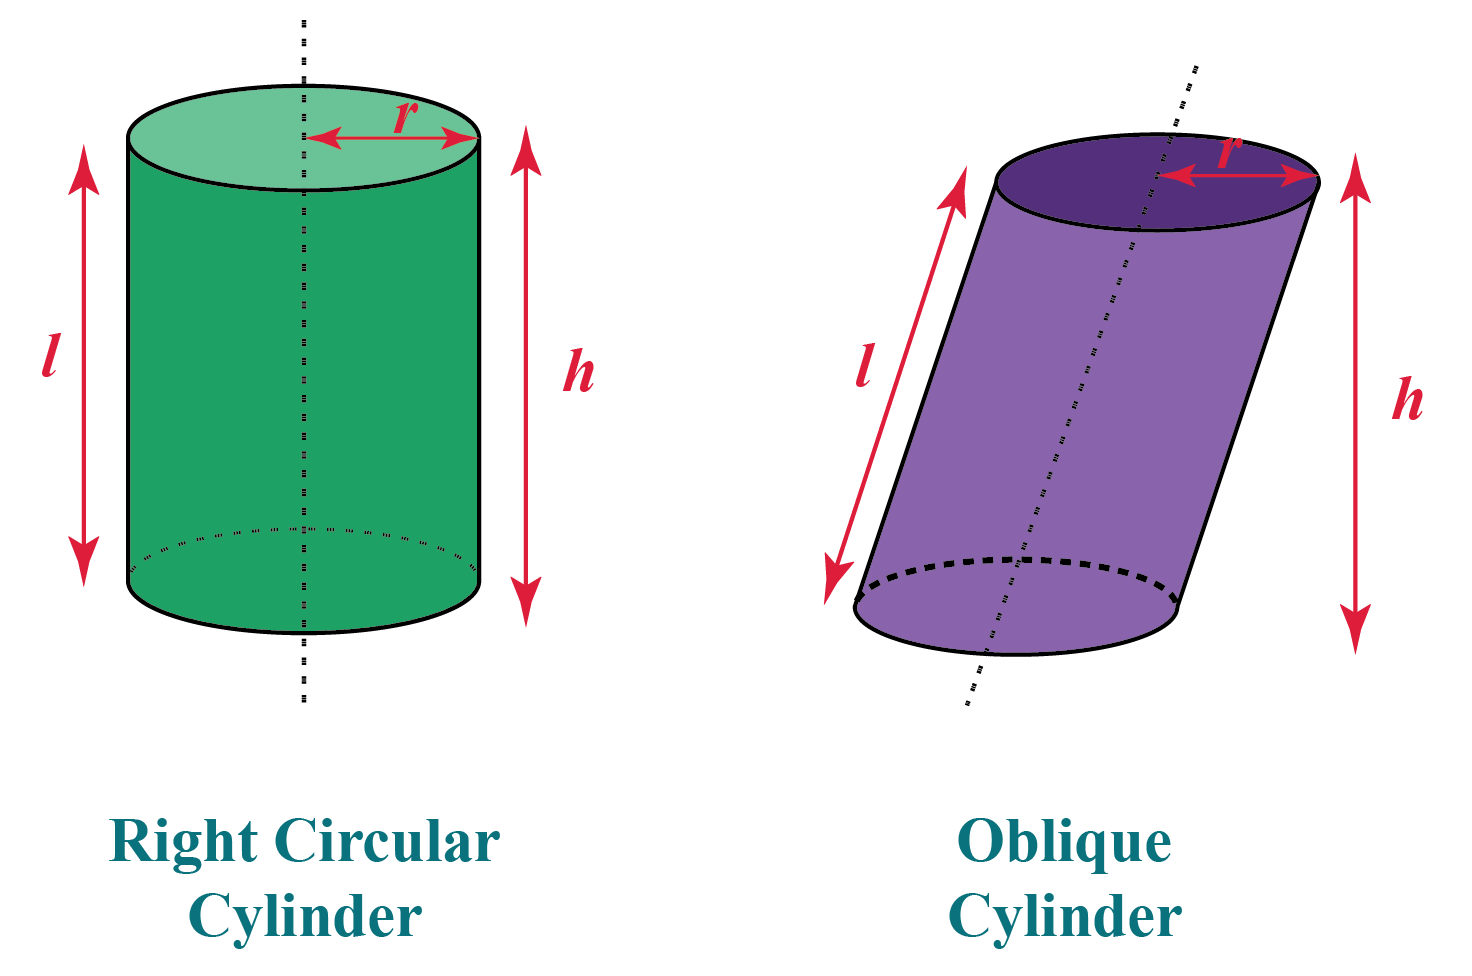 Right and Oblique cylinders with dimensions